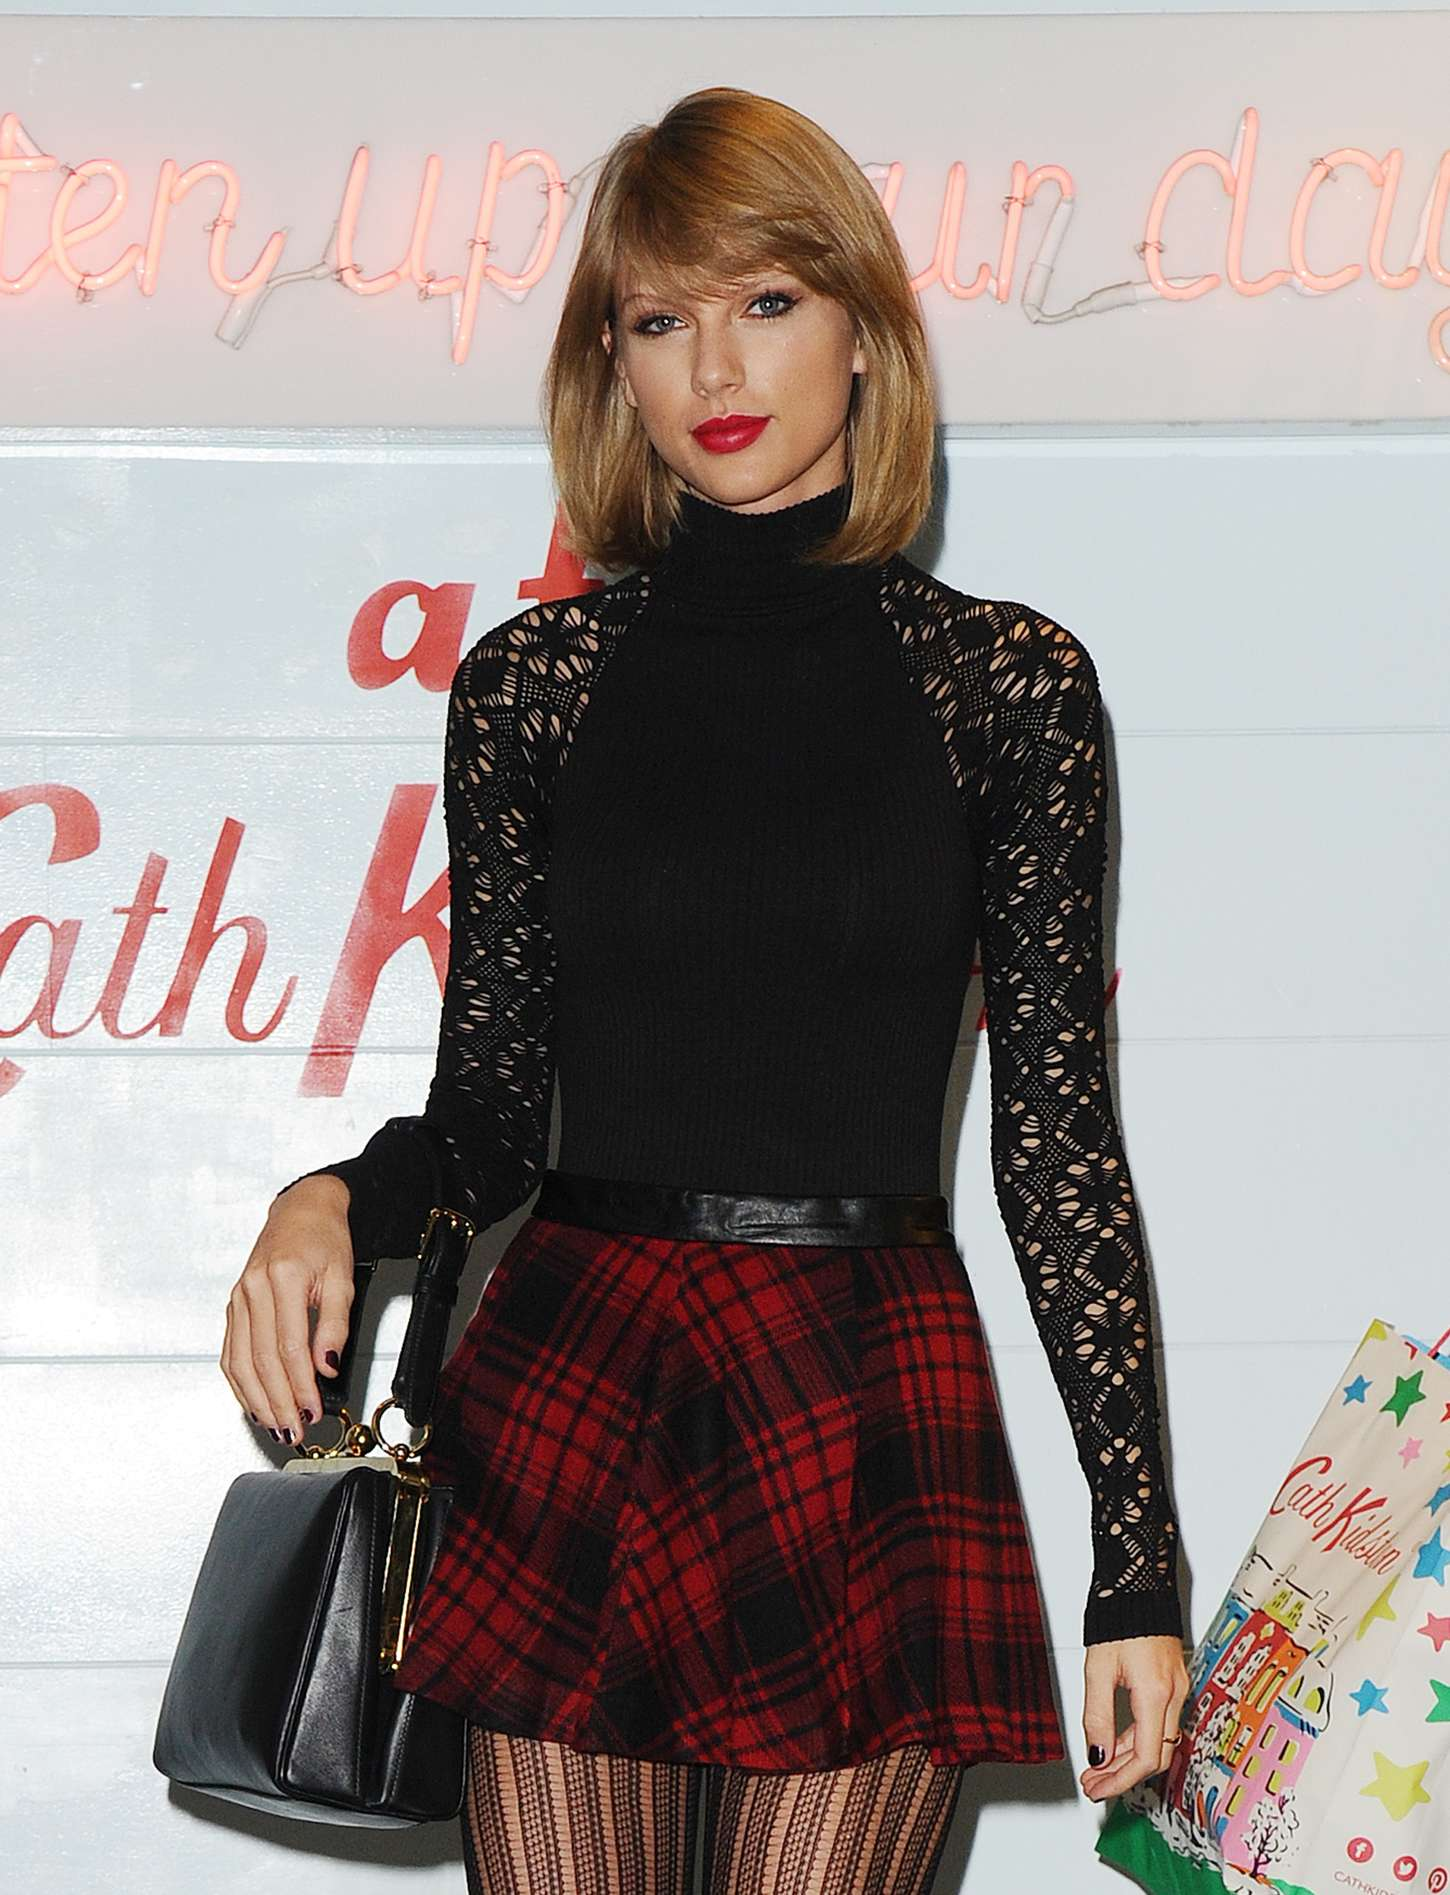 Taylor Swift 2014 : Taylor Swift in Mini Skirt at Cath Kidston -11